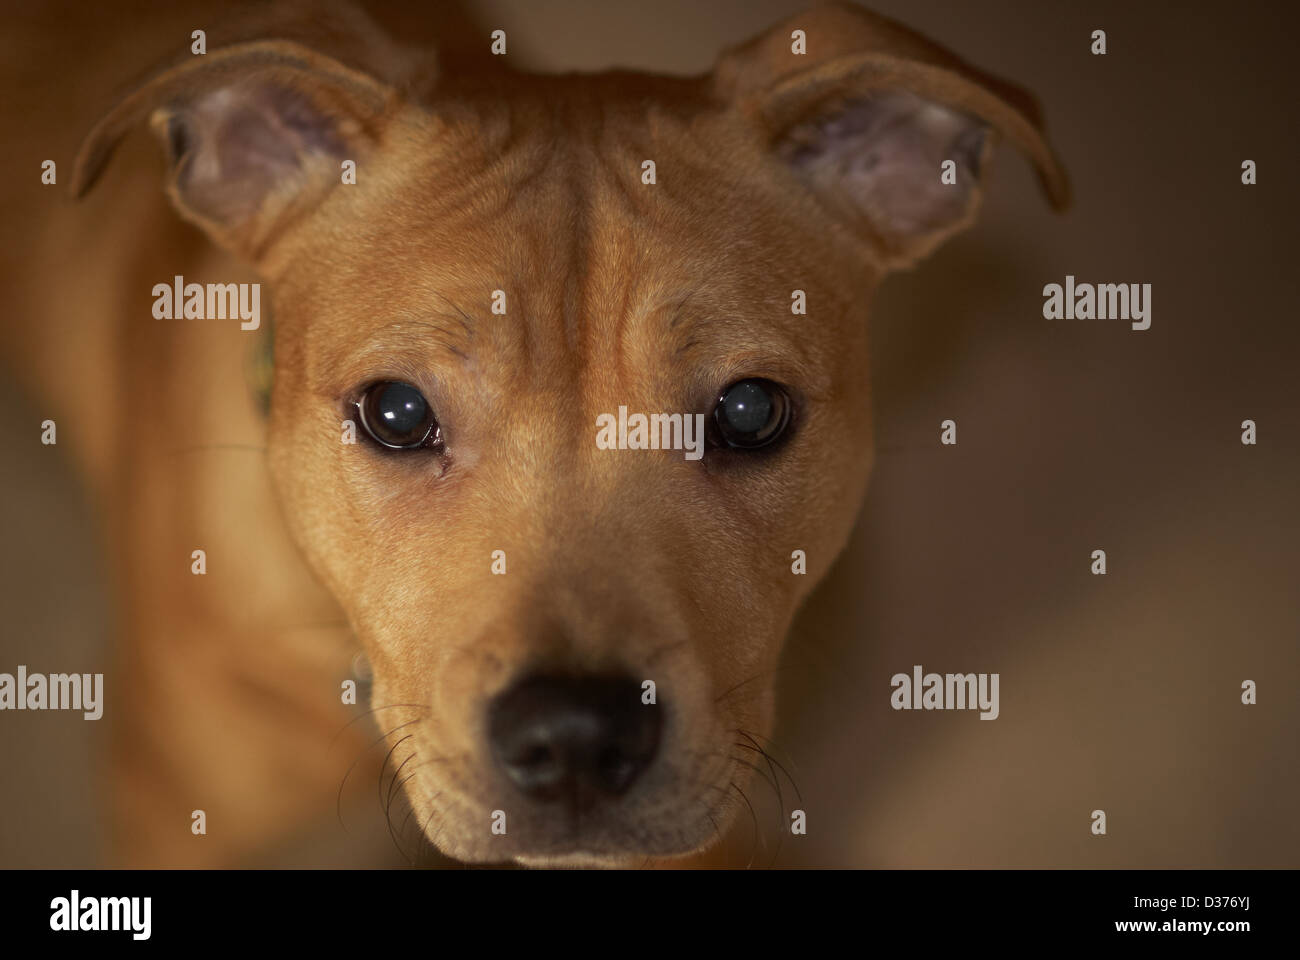 Golden Staffordshire Bull Terrier - Stock Image